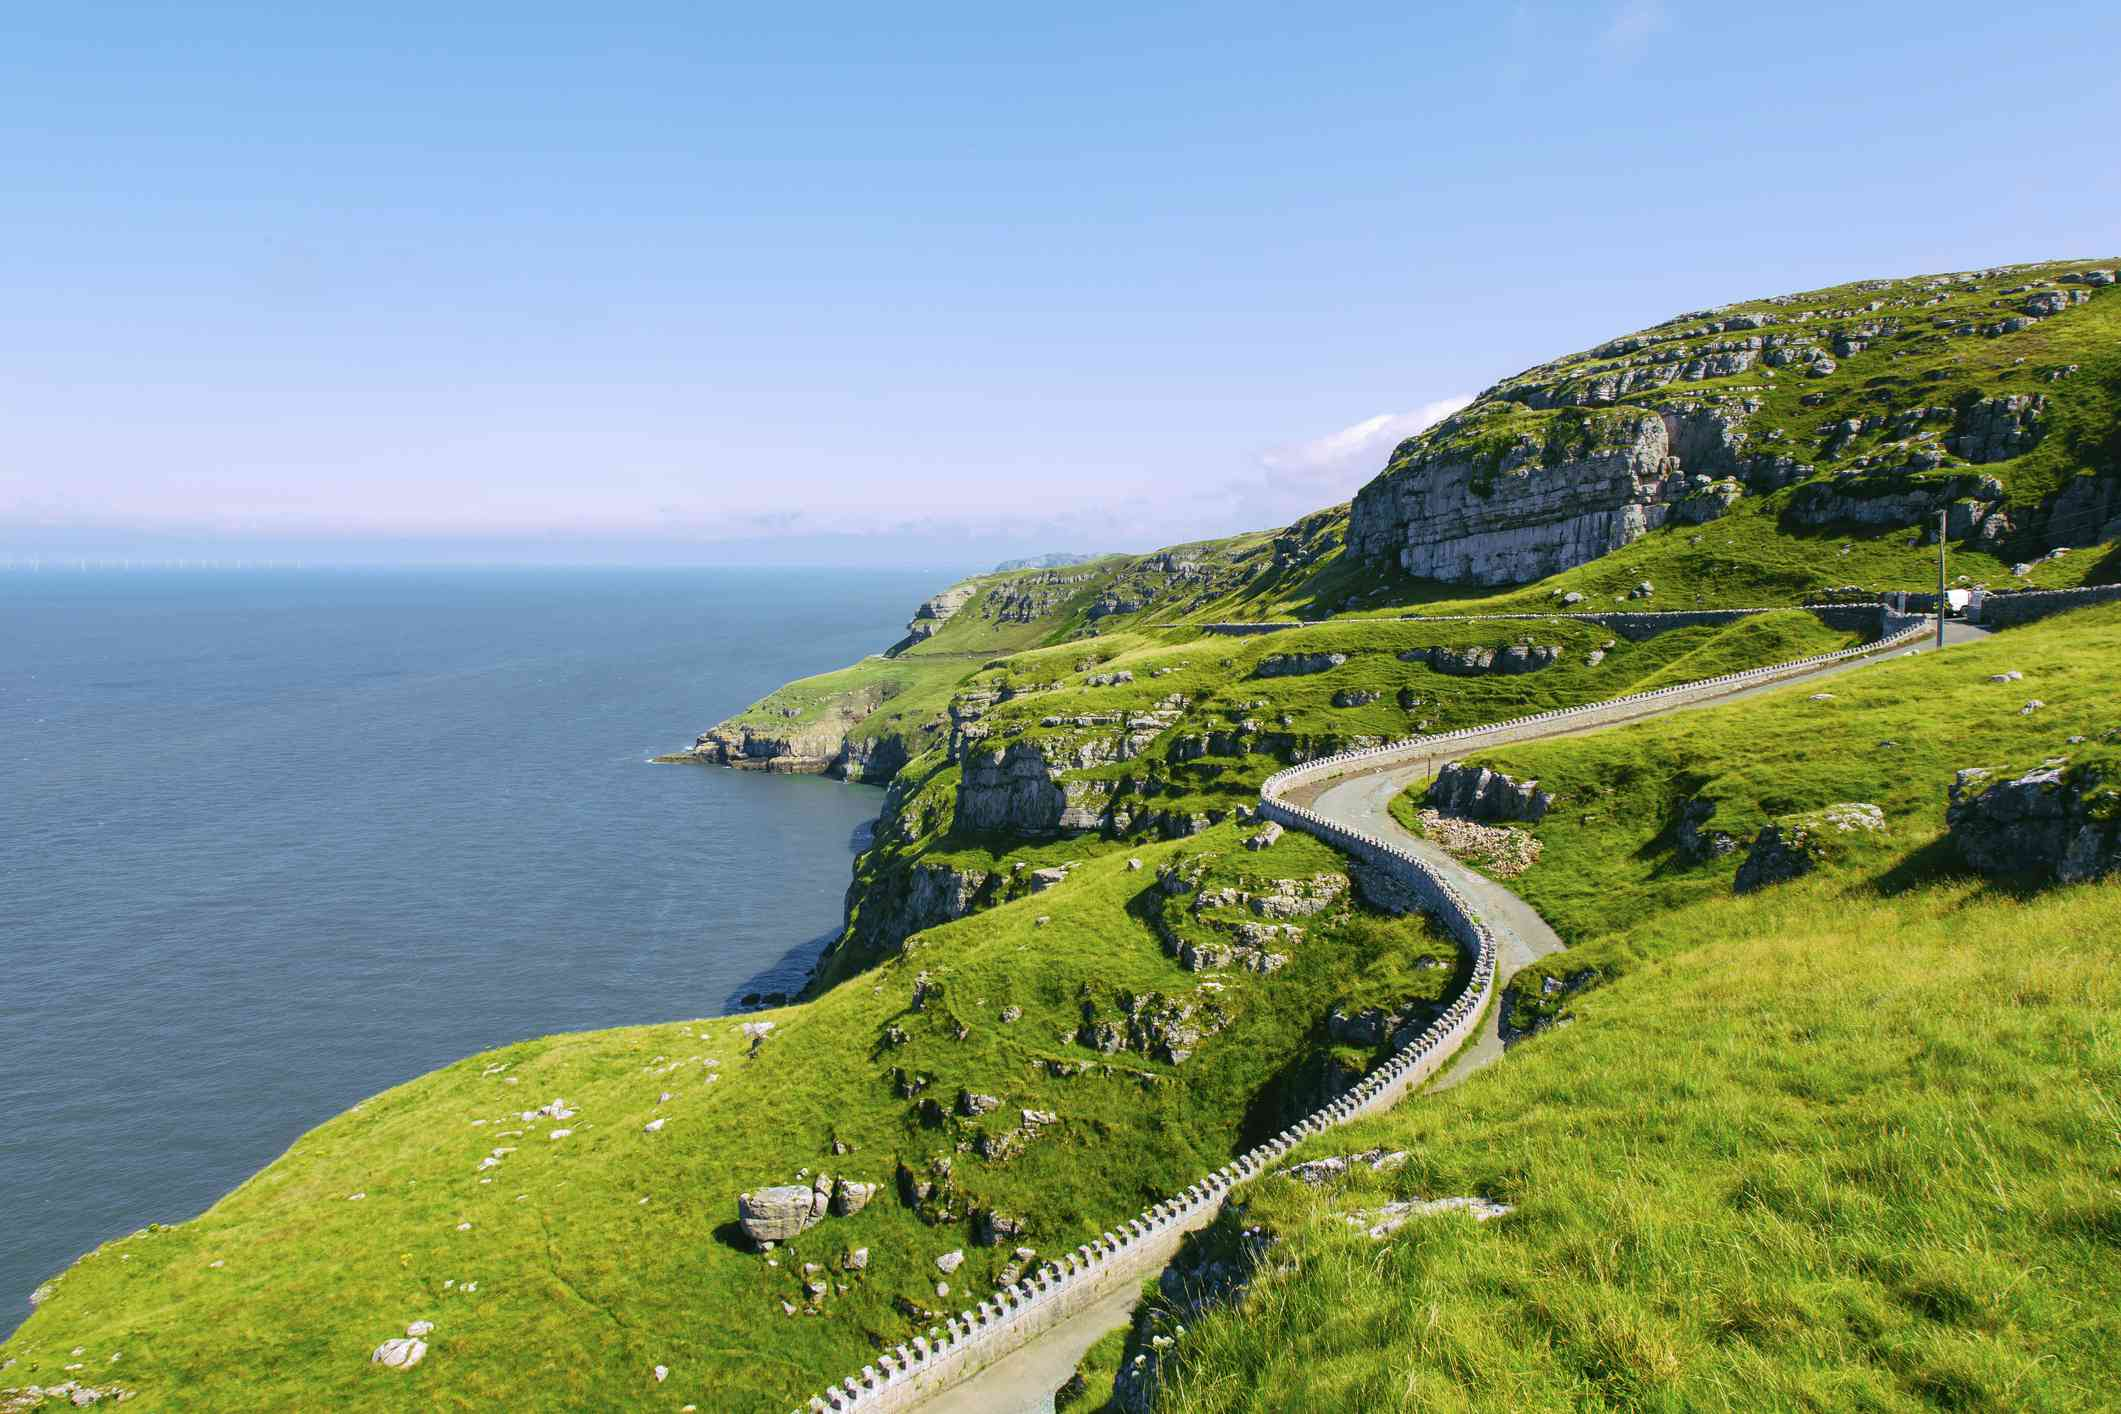 Winding road at Great Orme, North Wales